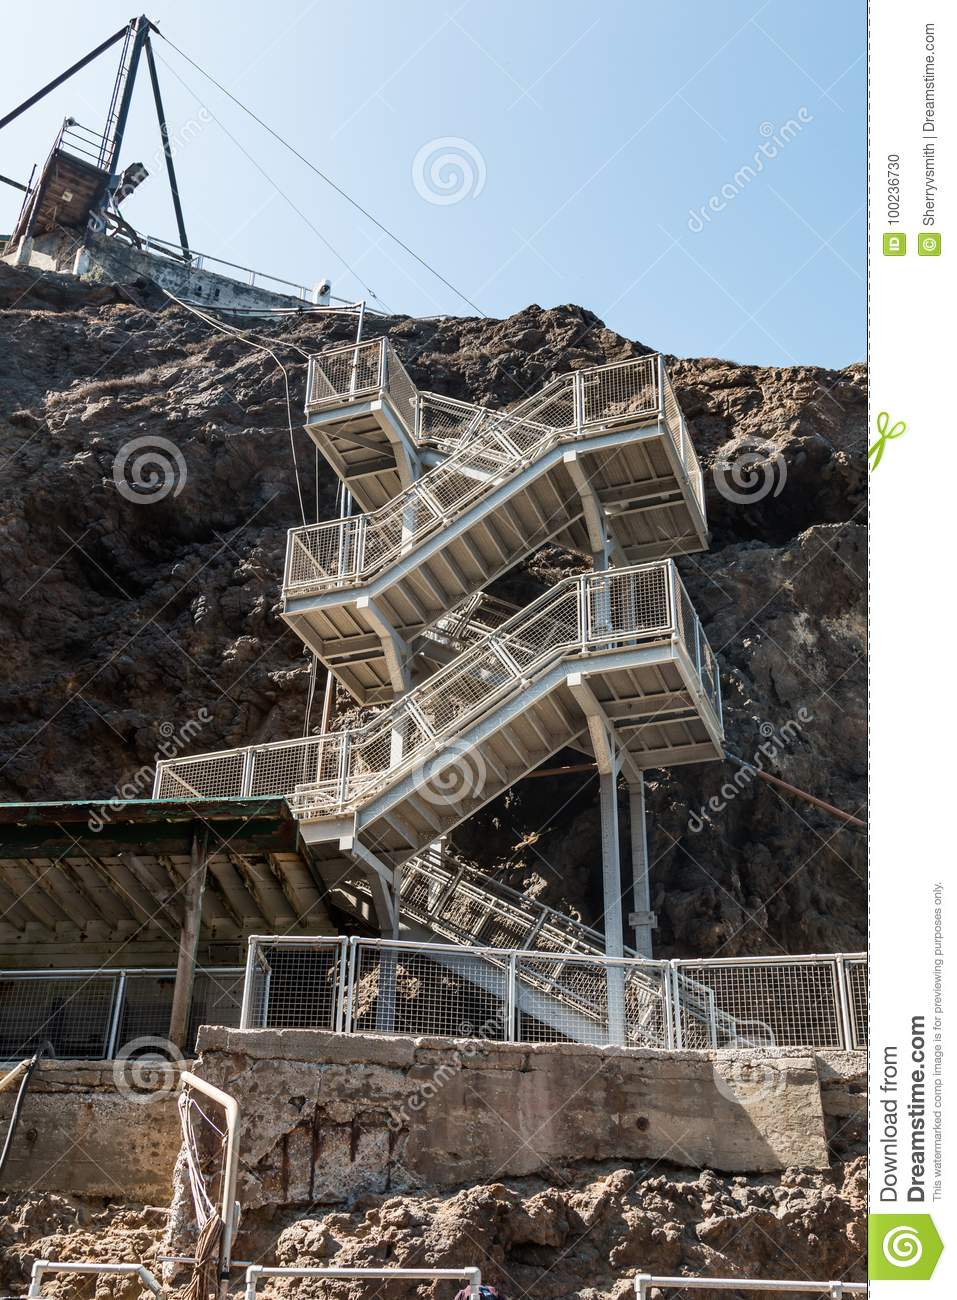 Staircase to Anacapa Island in Southern California